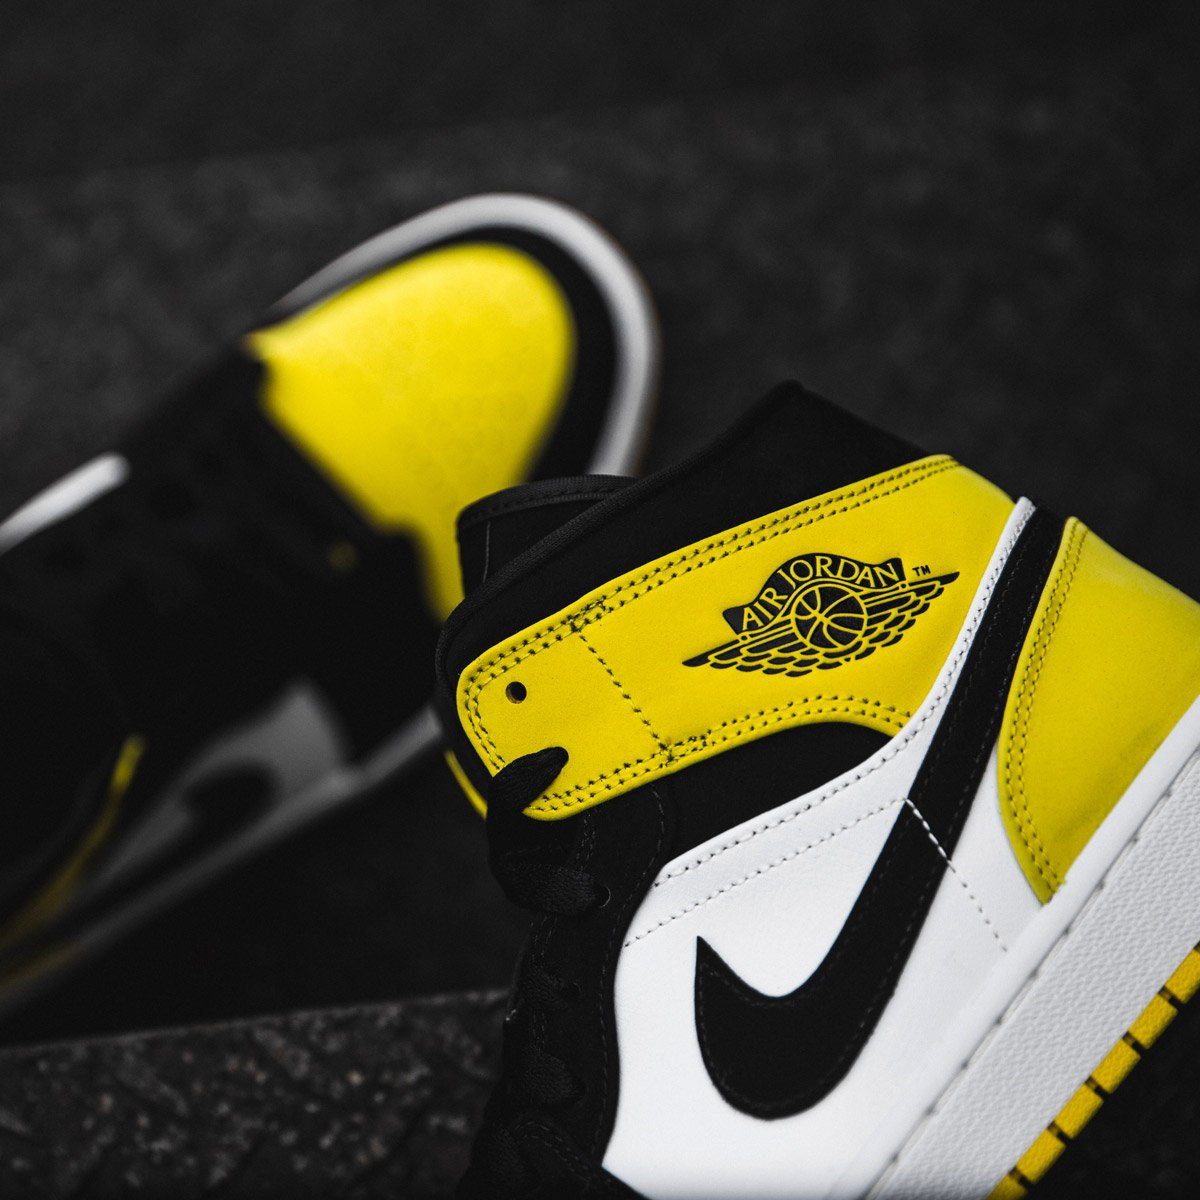 1ac13b7d92 The Air Jordan 1 Mid 'Yellow Toe' is now available in SNIPES stores and